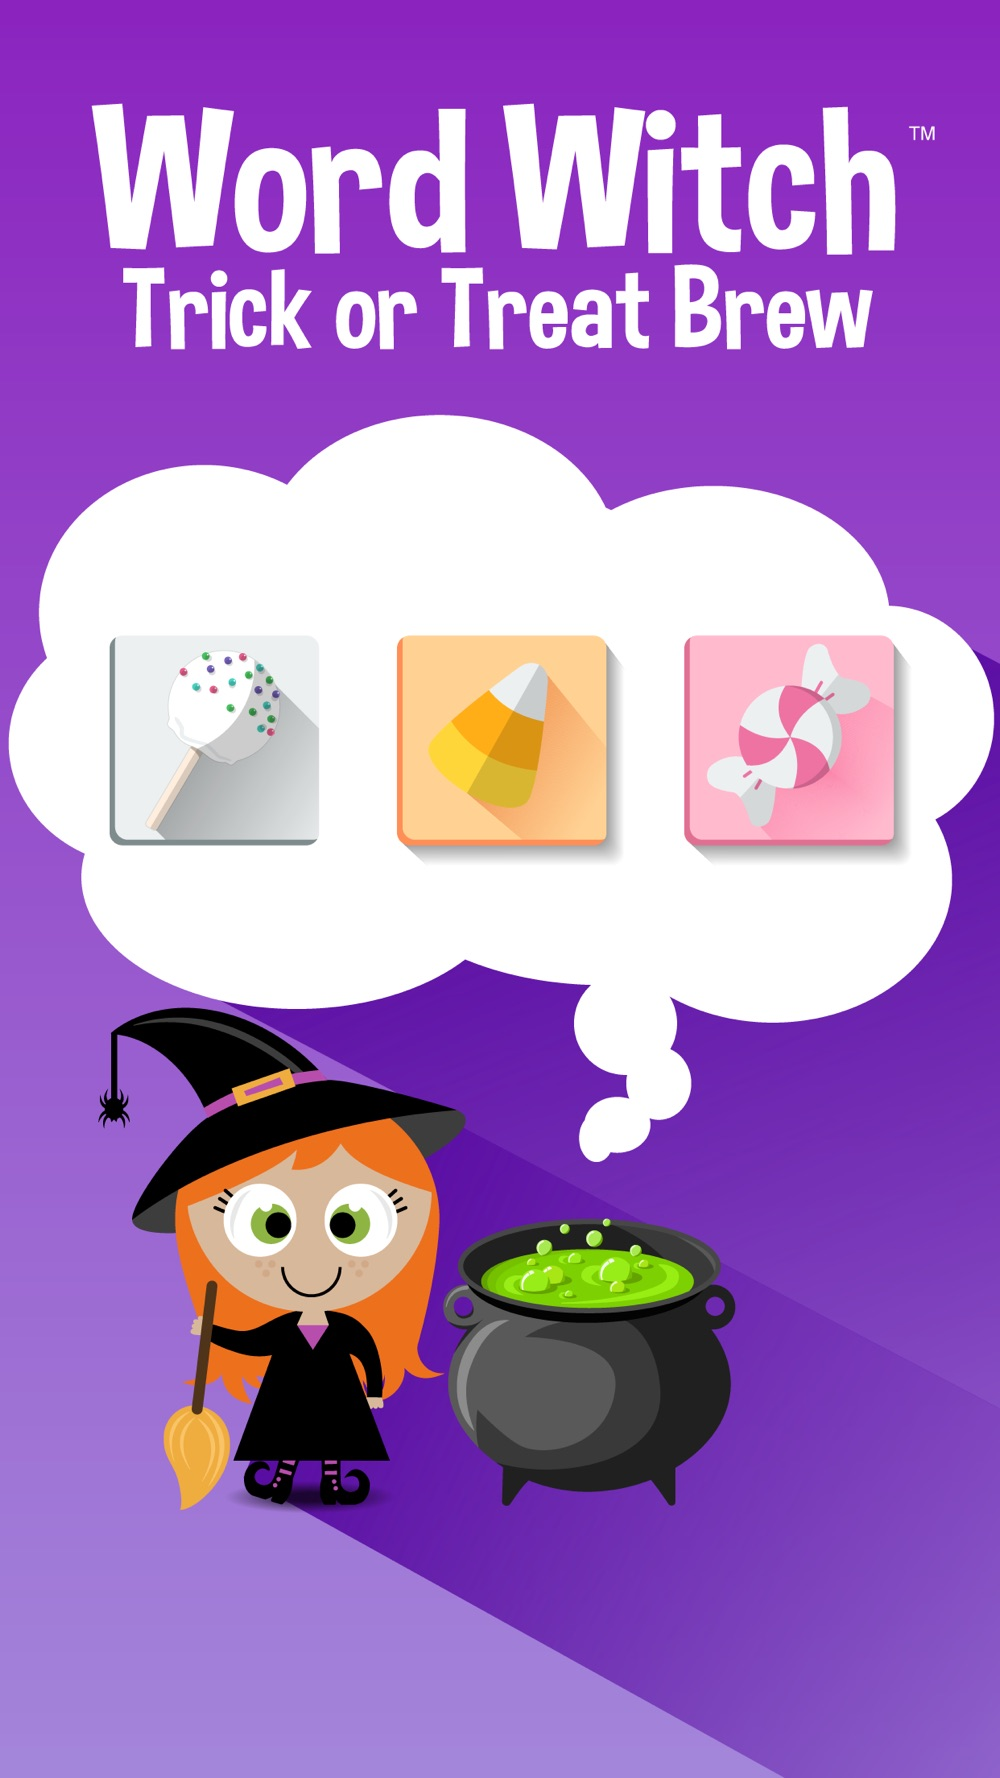 Word Witch: A Halloween Trick or Treat Search Game